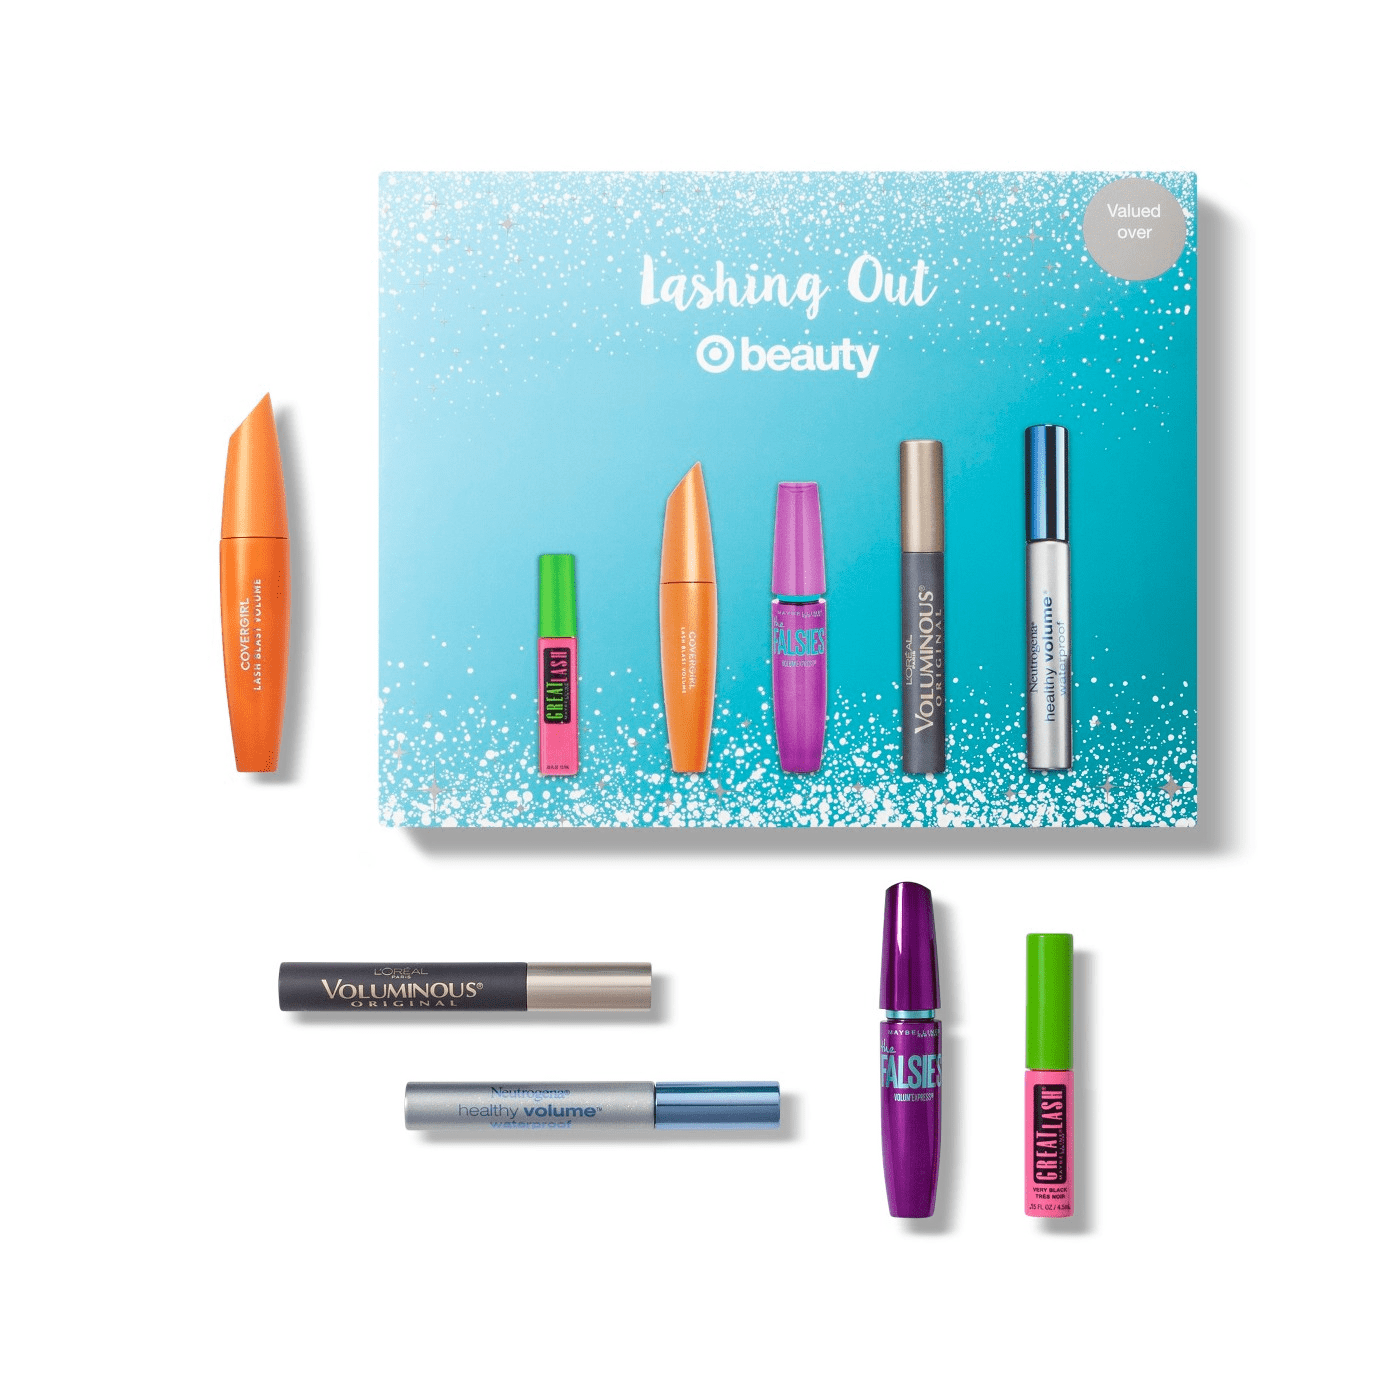 Target Holiday Beauty Box Best of Mascara Box Available Now!